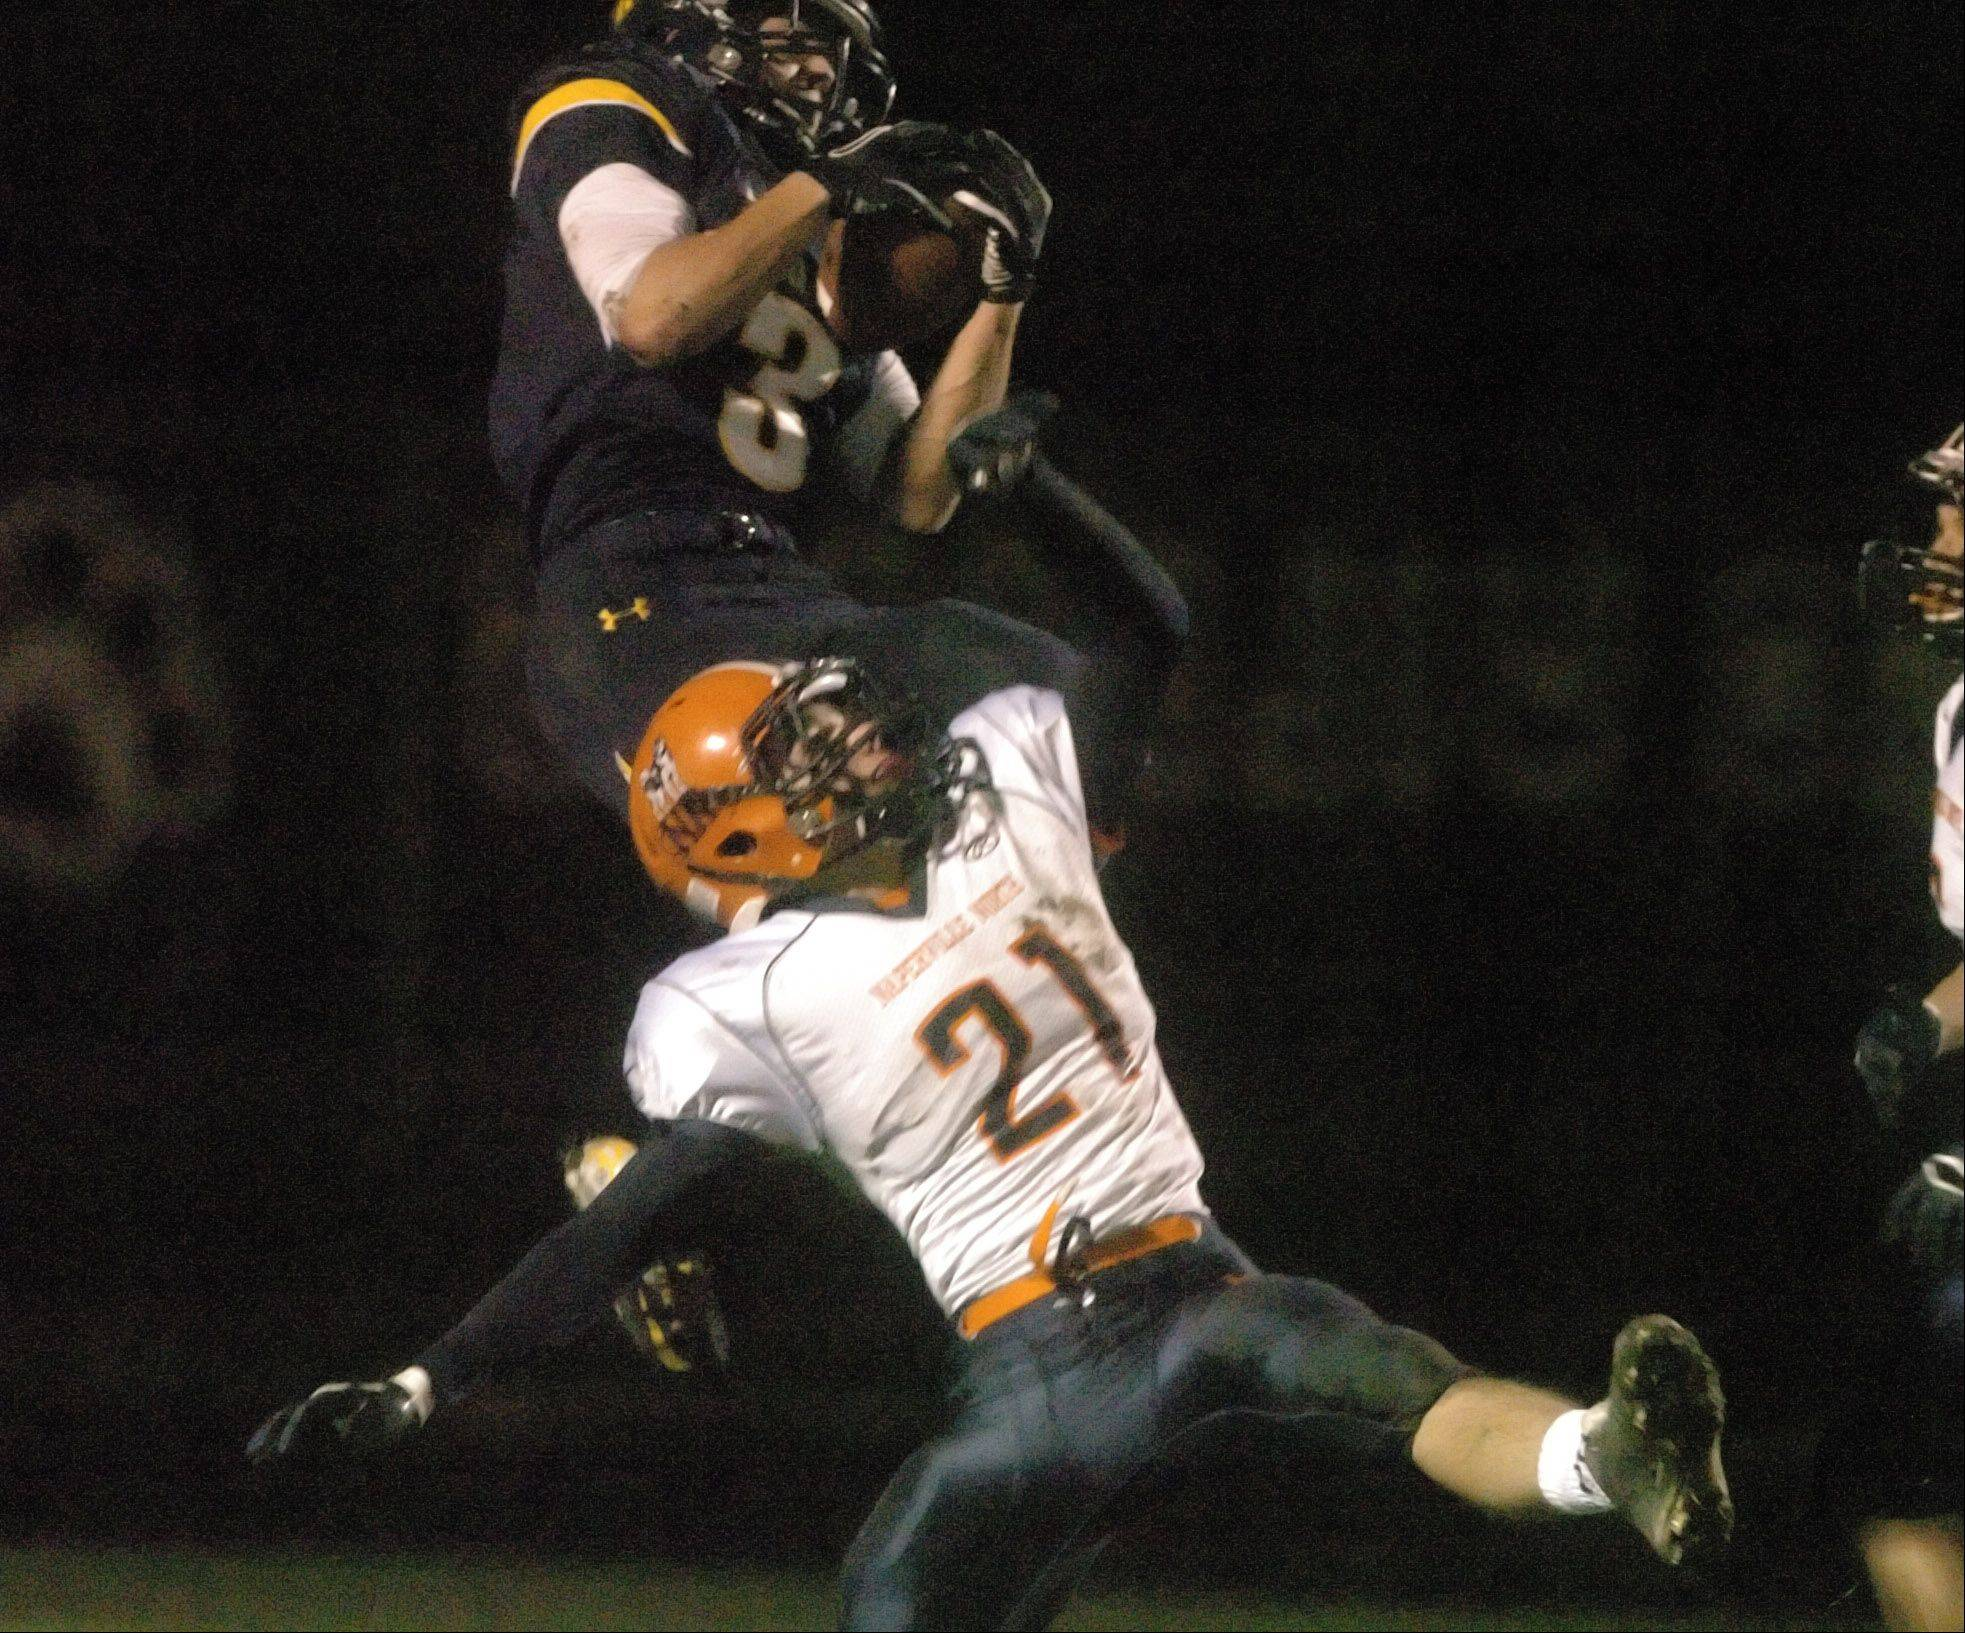 Mikey Dudek of Neuqua pulls down a pass while Danny Schertz of Naperville North tries to stop him.